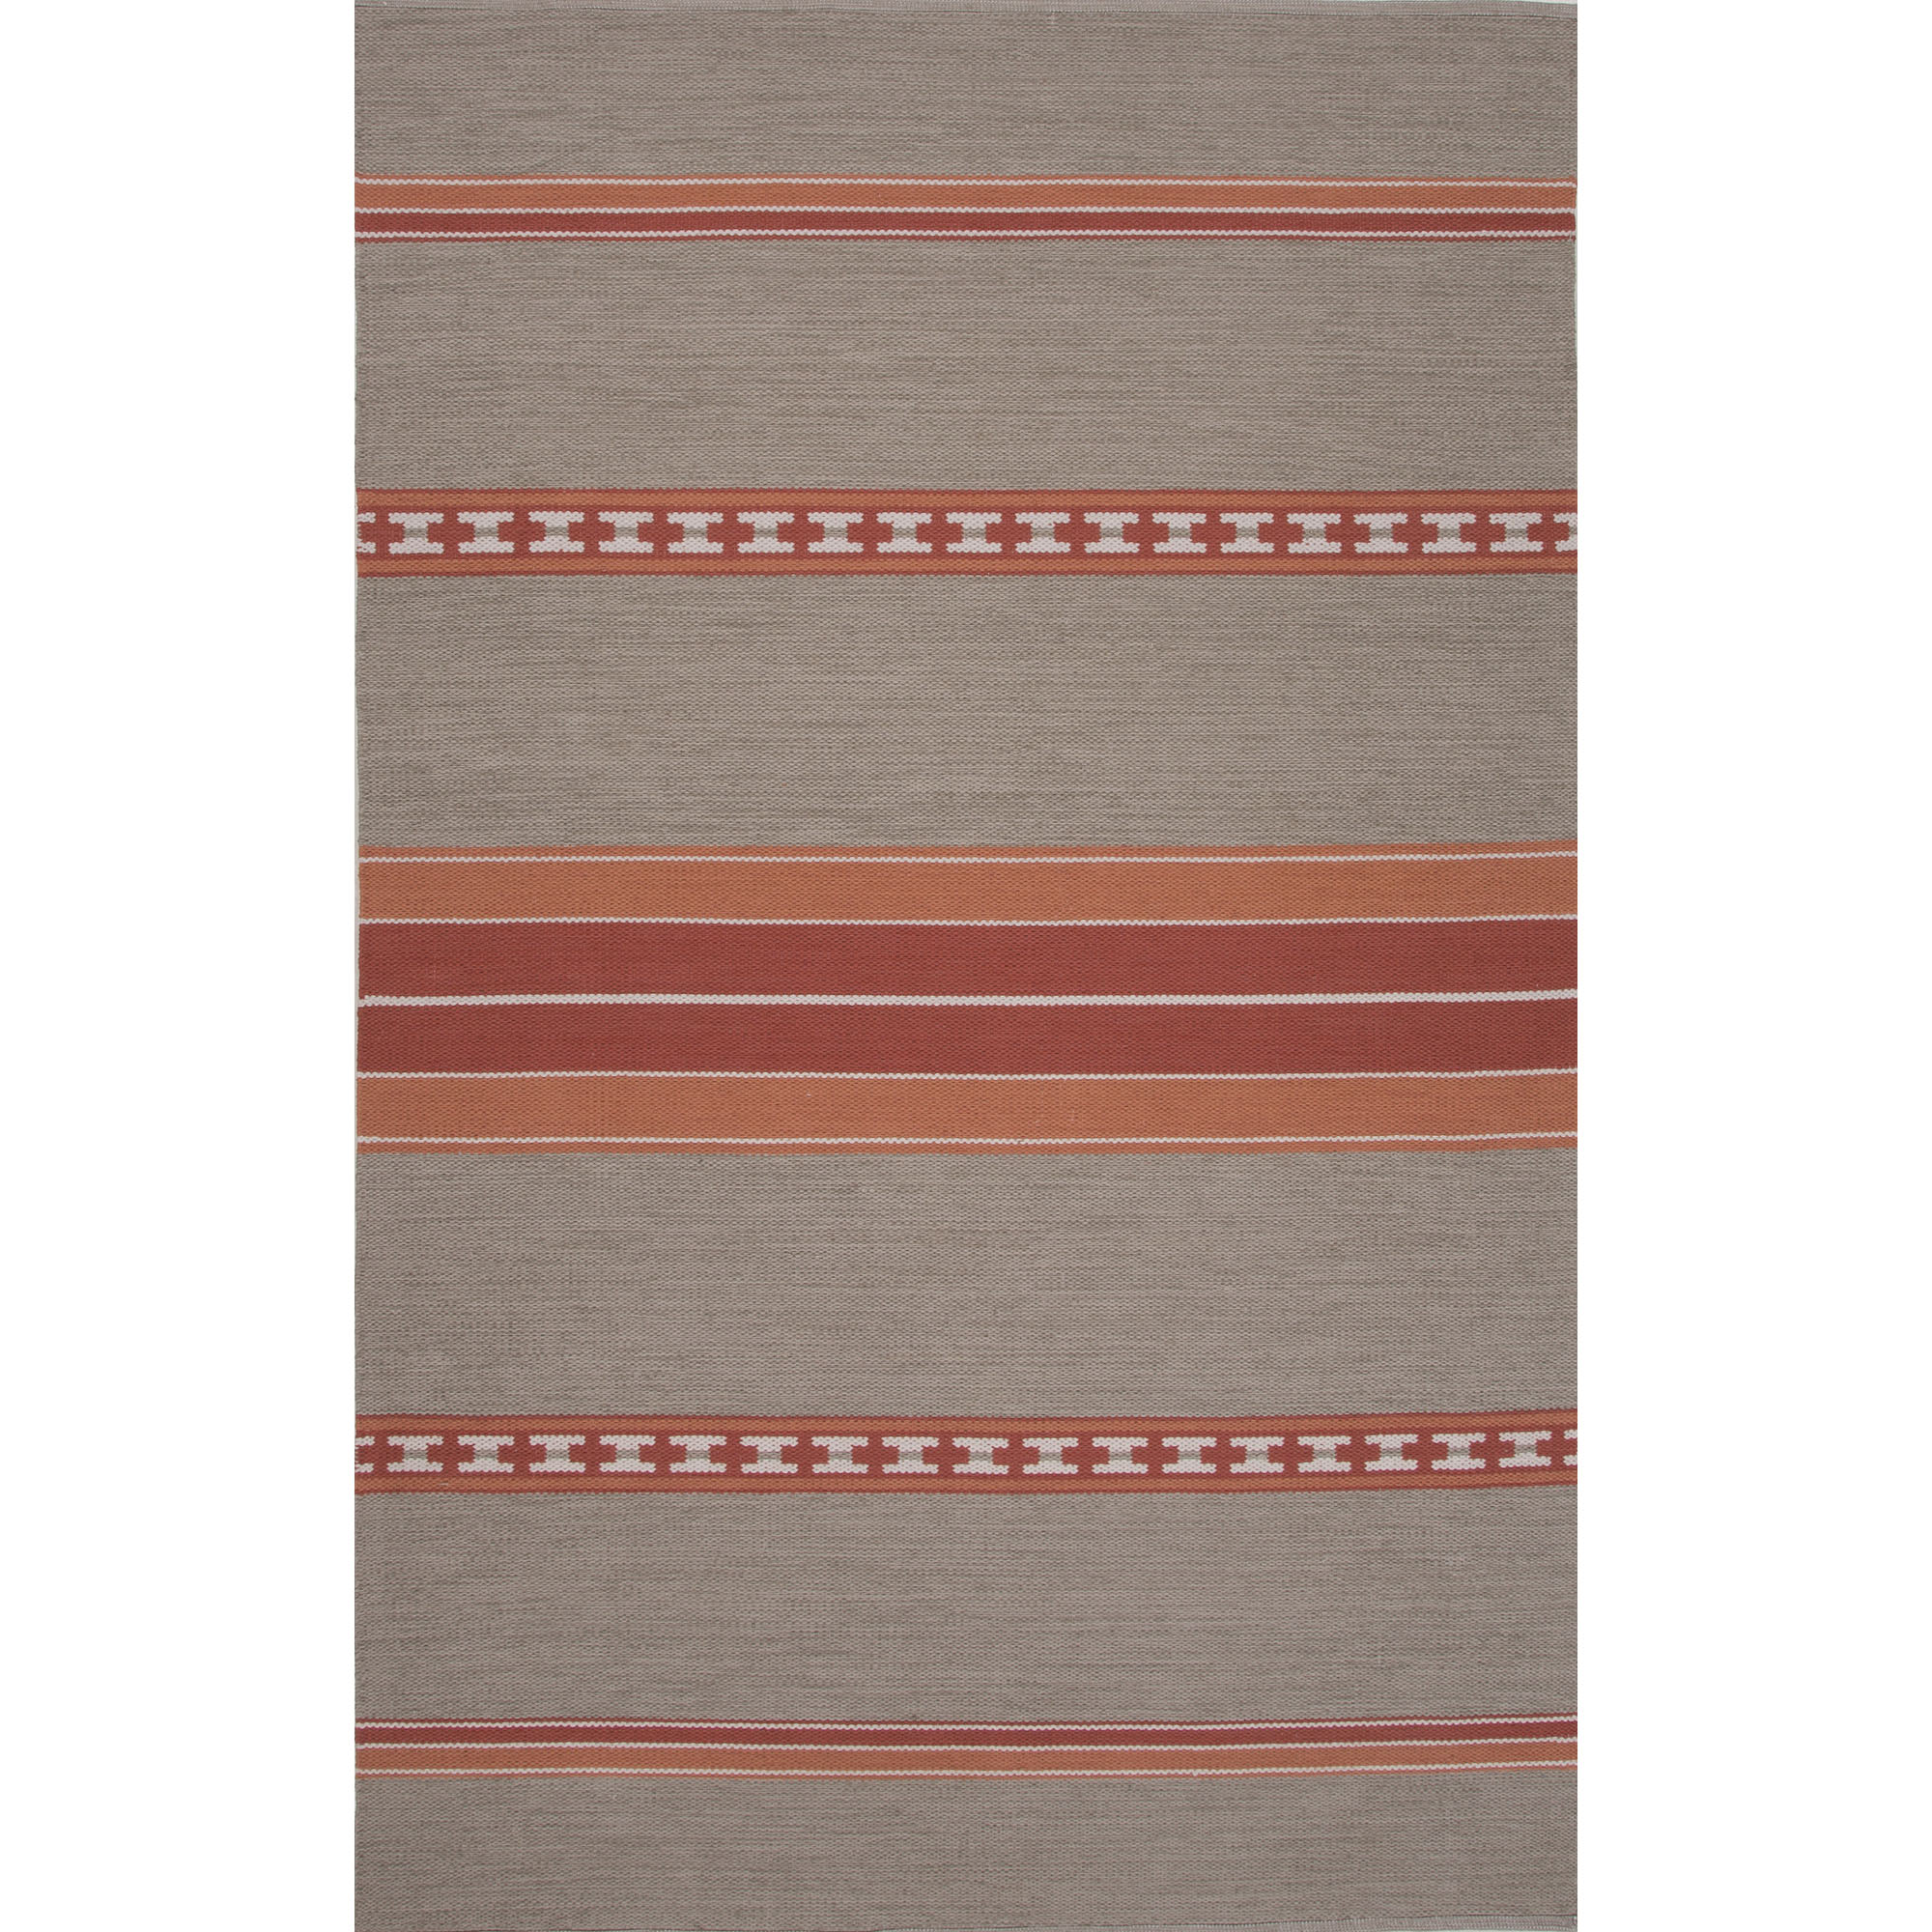 JAIPUR Rugs Traditions Modern Cotton Flat Weave 5 x 8 Rug - Item Number: RUG120652